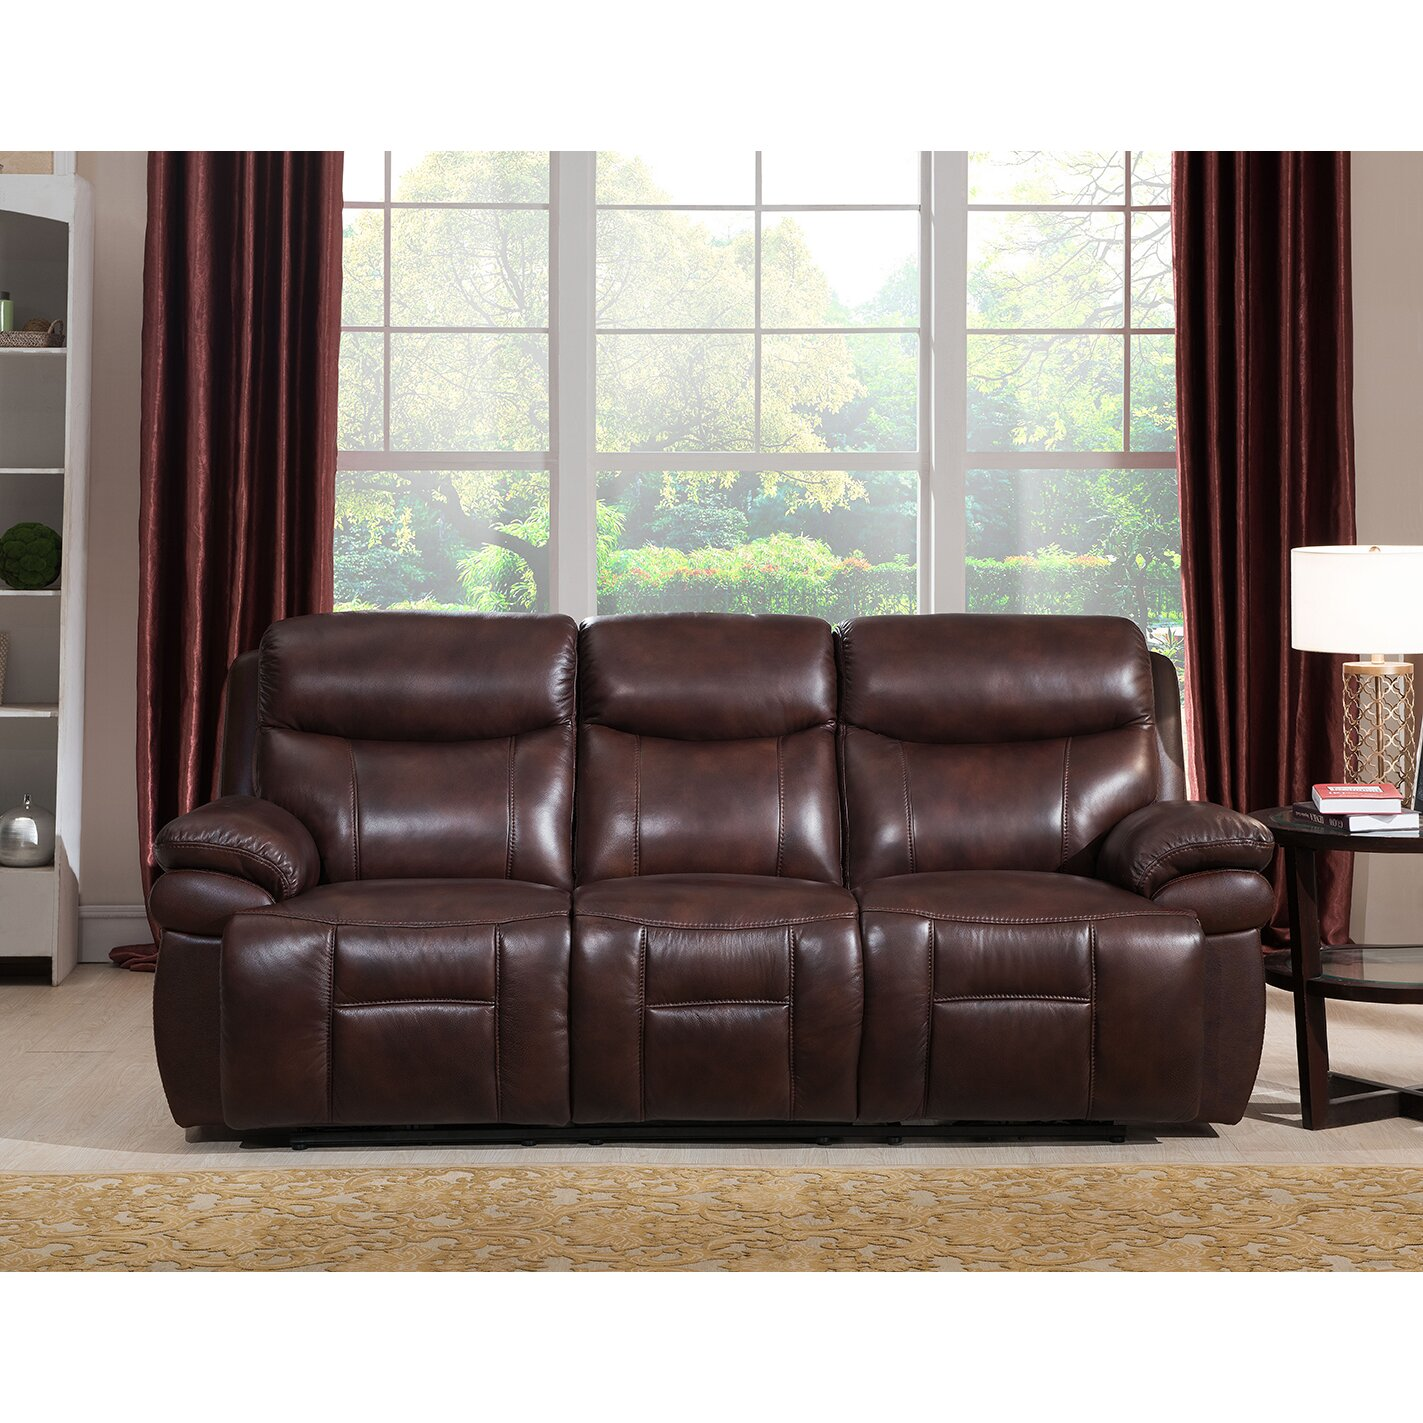 Amax Sanford 2 Piece Leather Power Reclining Living Room Set With Power Headr